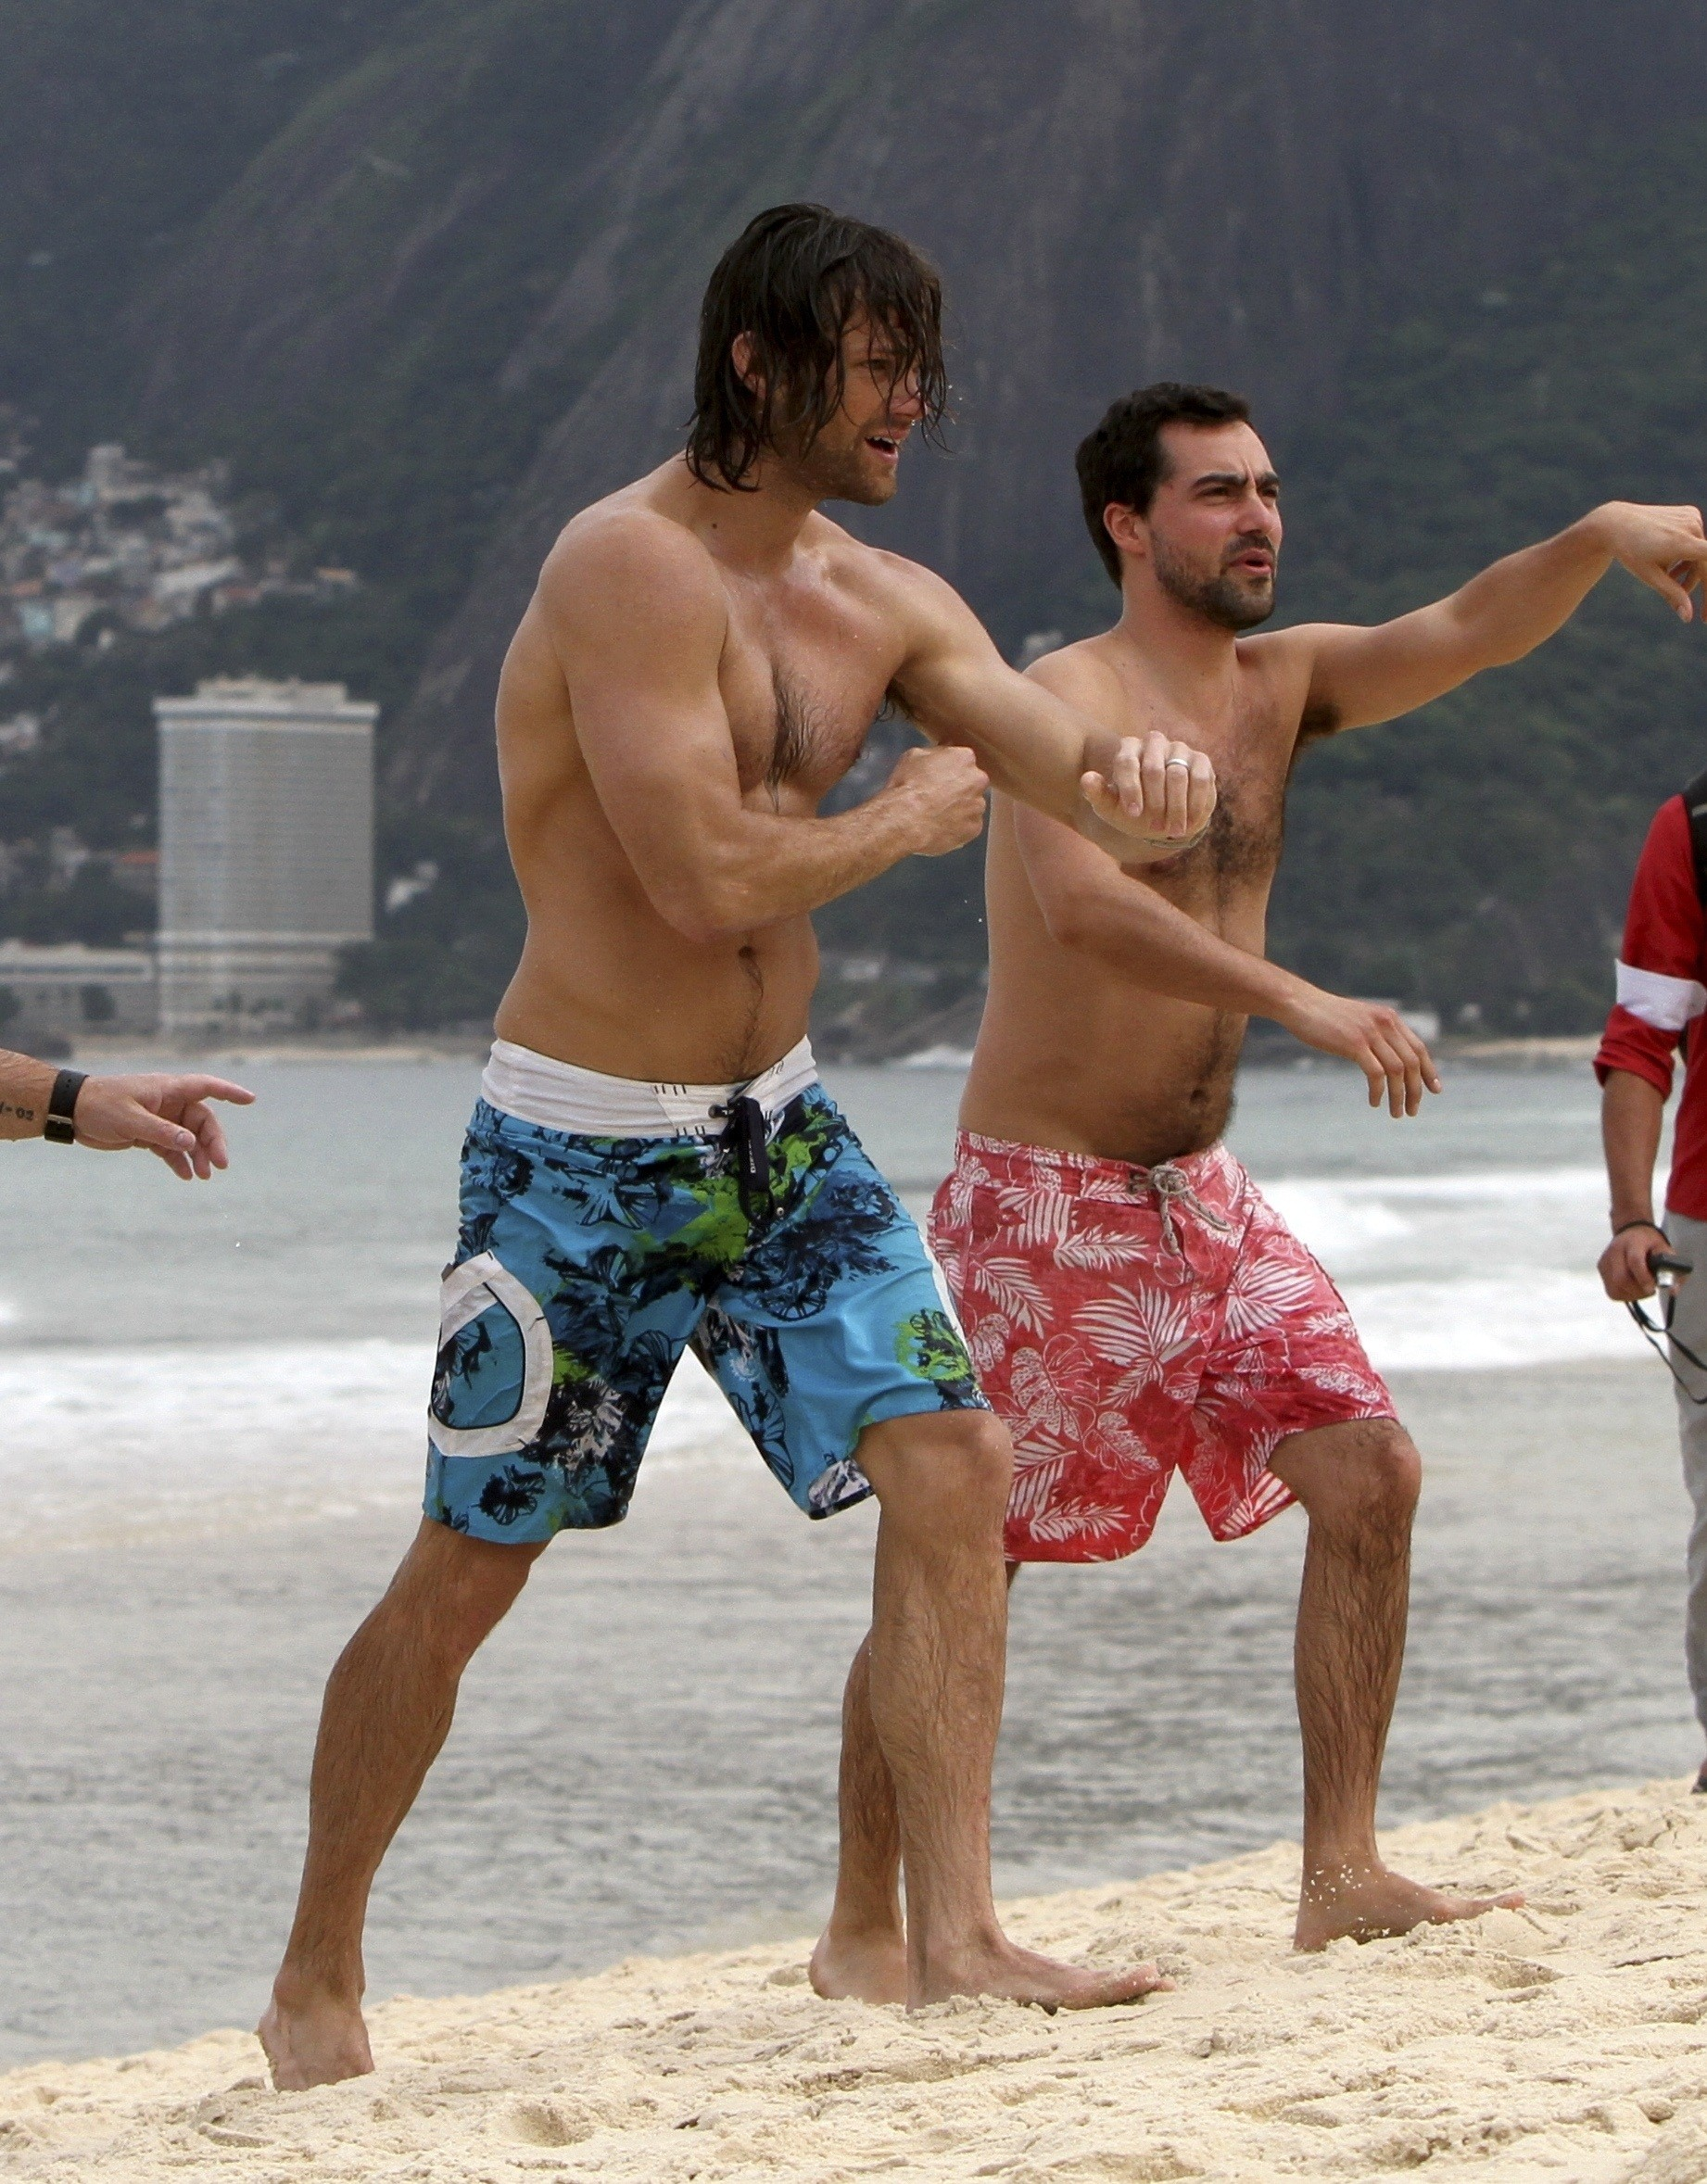 Shirtless at the beach in Rio De Janeiro. HD Wallpaper and background  photos of Jared for fans of jared padalecki and jensen ackles images.